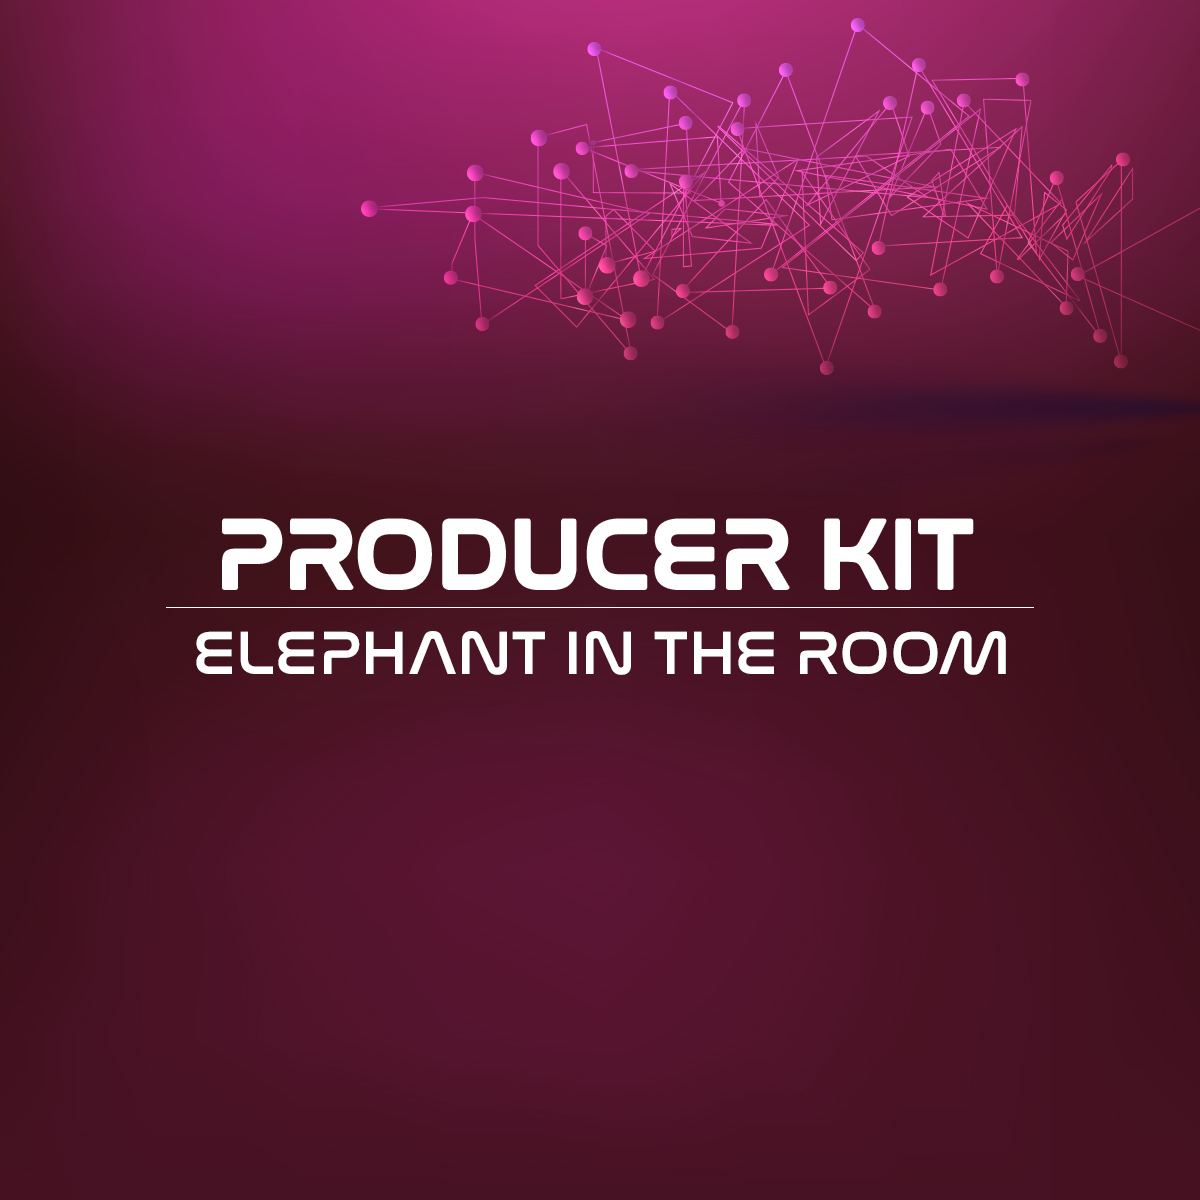 Producer Kit - Elephant In the Room